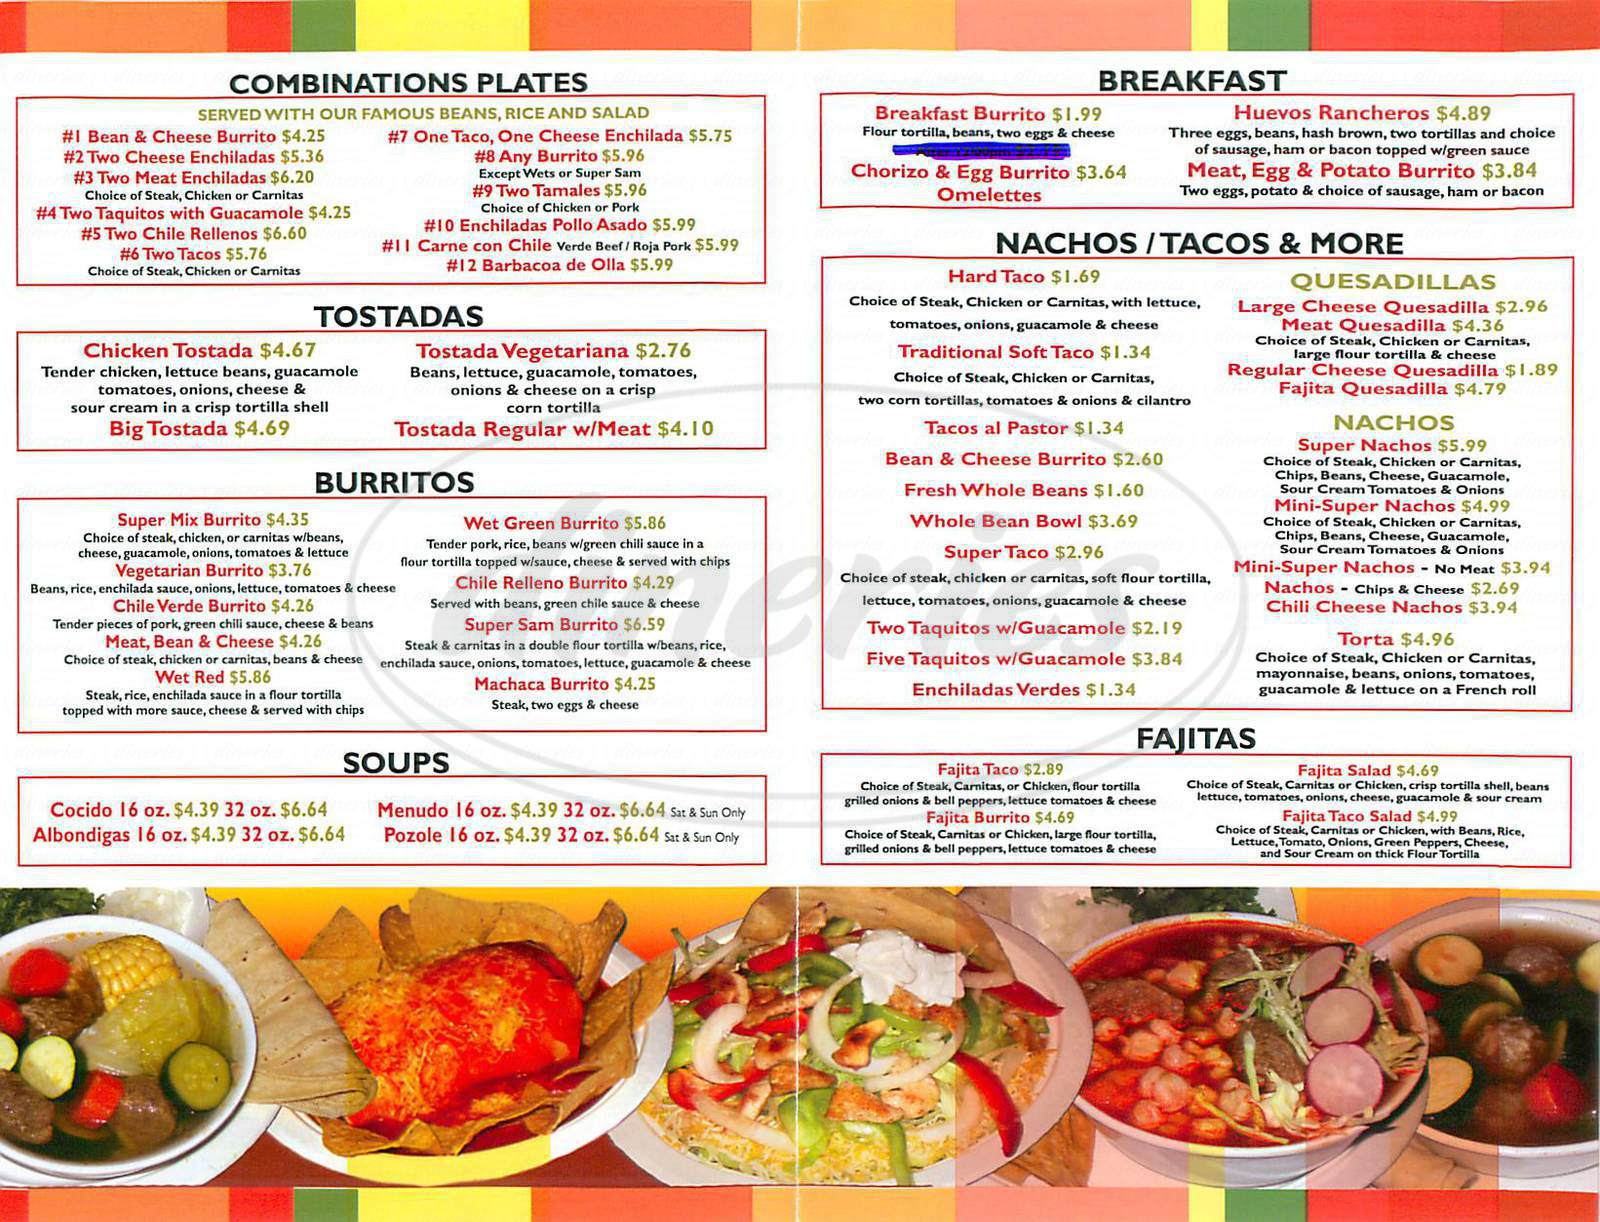 menu for Burrito Village